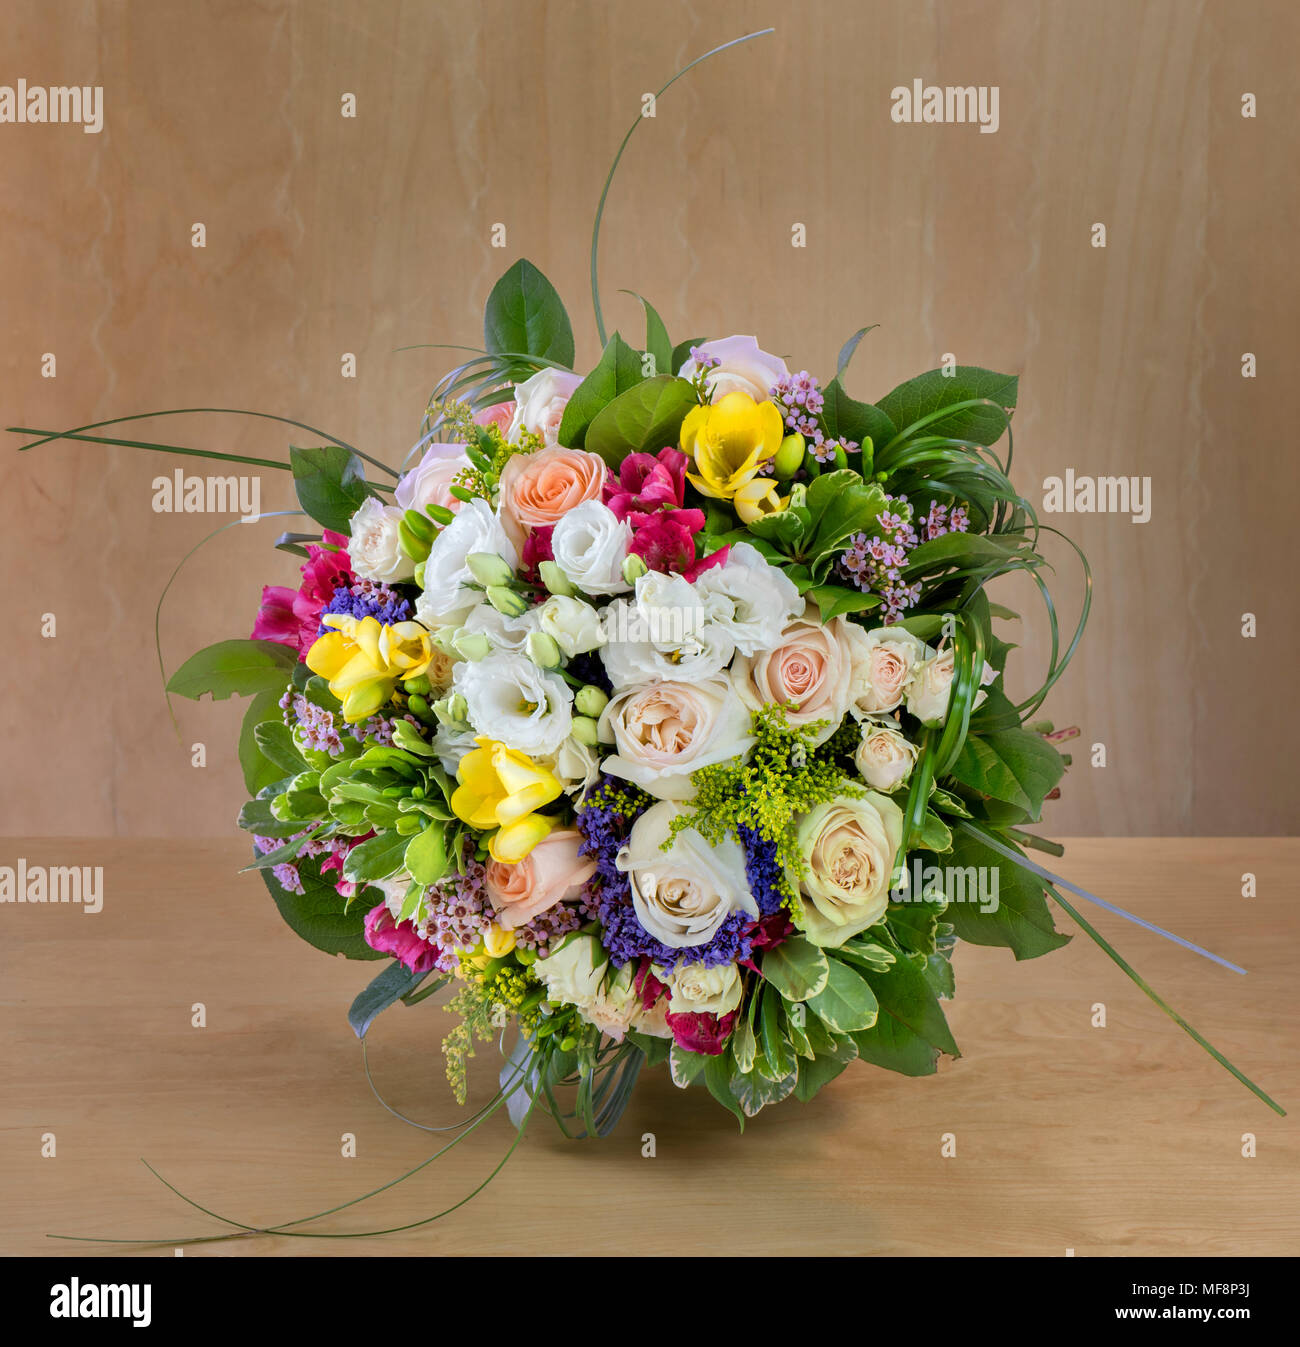 beautiful bouquet of flowers, multi-colored roses with green leaves ...